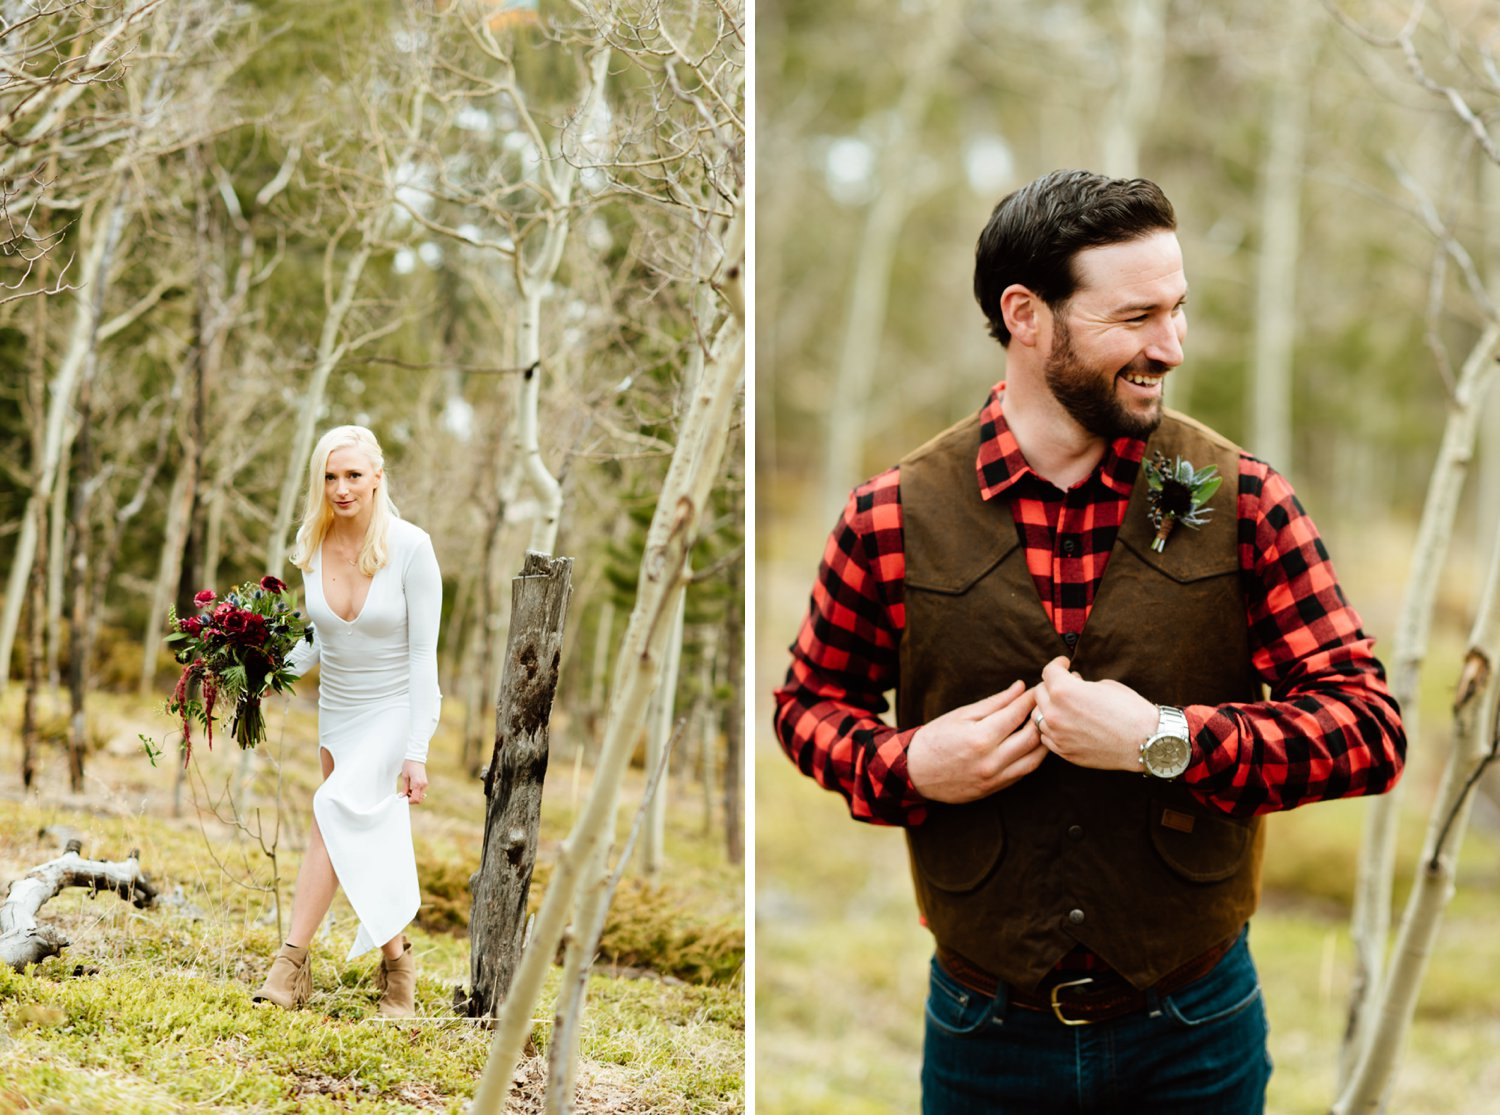 A whimsical and romantic forest elopement in a woodland in the Rocky Mountains. Colorado's rustic Aspen trees in Black Hawk could not have made a better setting for this adventurous elopement. | Photo by Maddie Mae